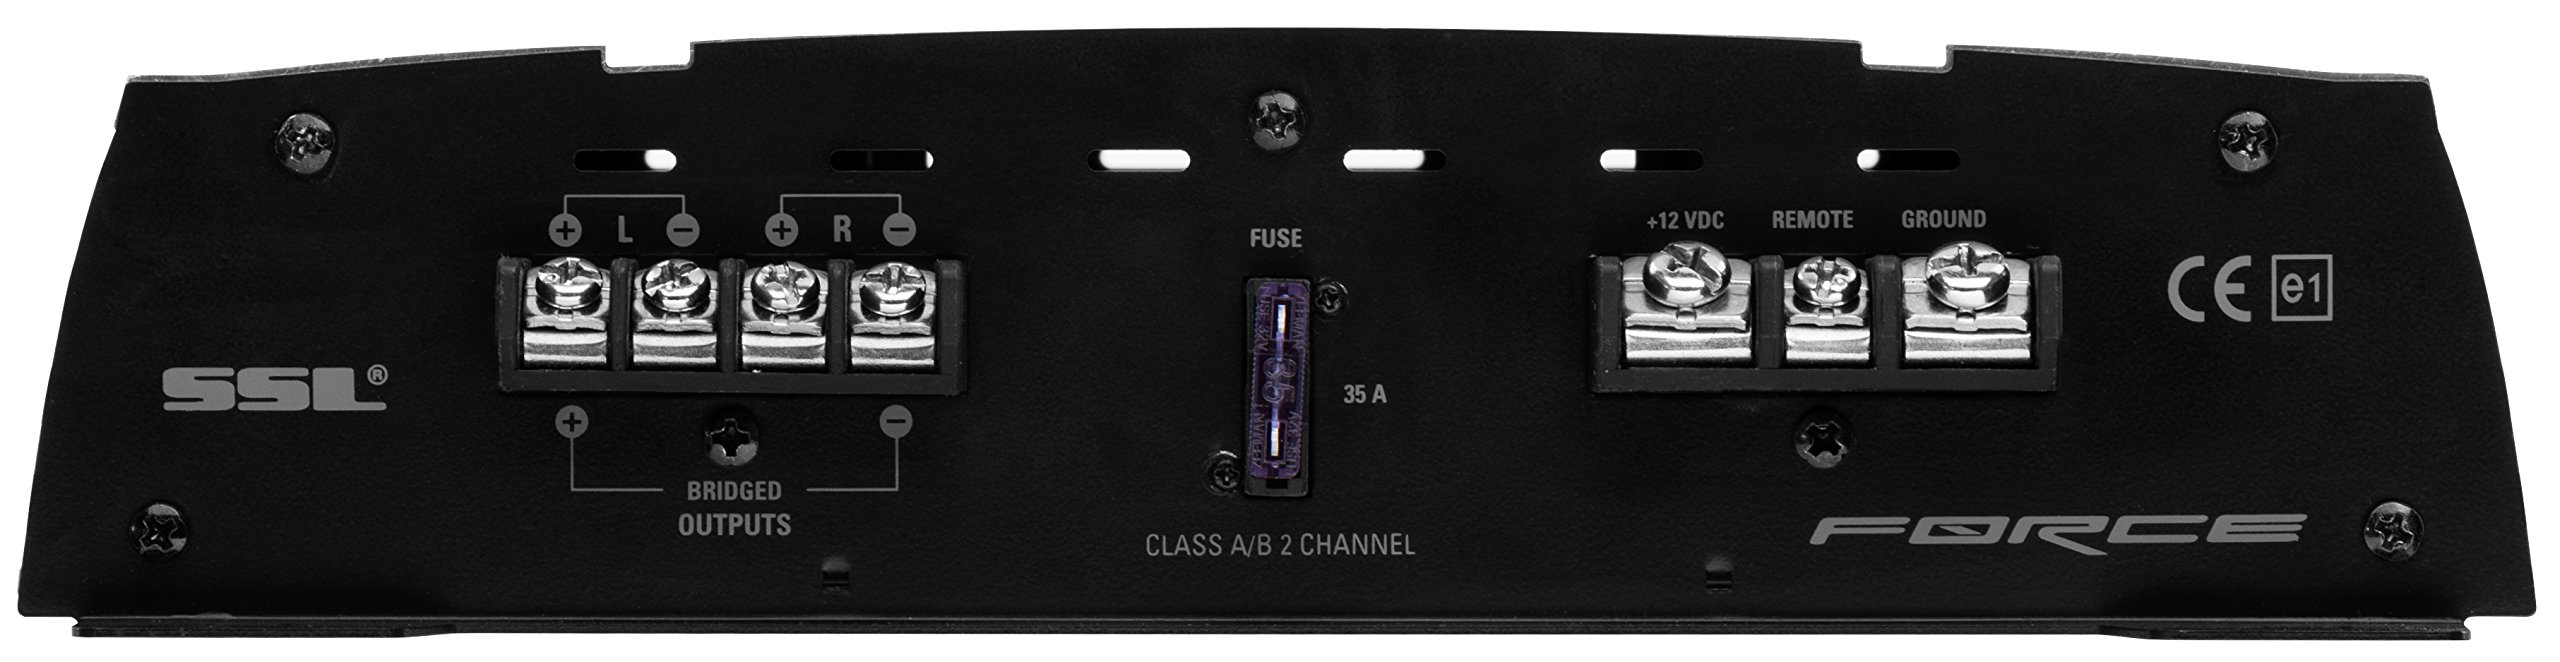 Sound Storm FR1000.2 Force 1000 Watt, 2 Channel, 2 to 8 Ohm Stable Class A/B, Full Range, Bridgeable, MOSFET Car Amplifier with Remote Subwoofer Control by Sound Storm Laboratories (Image #4)